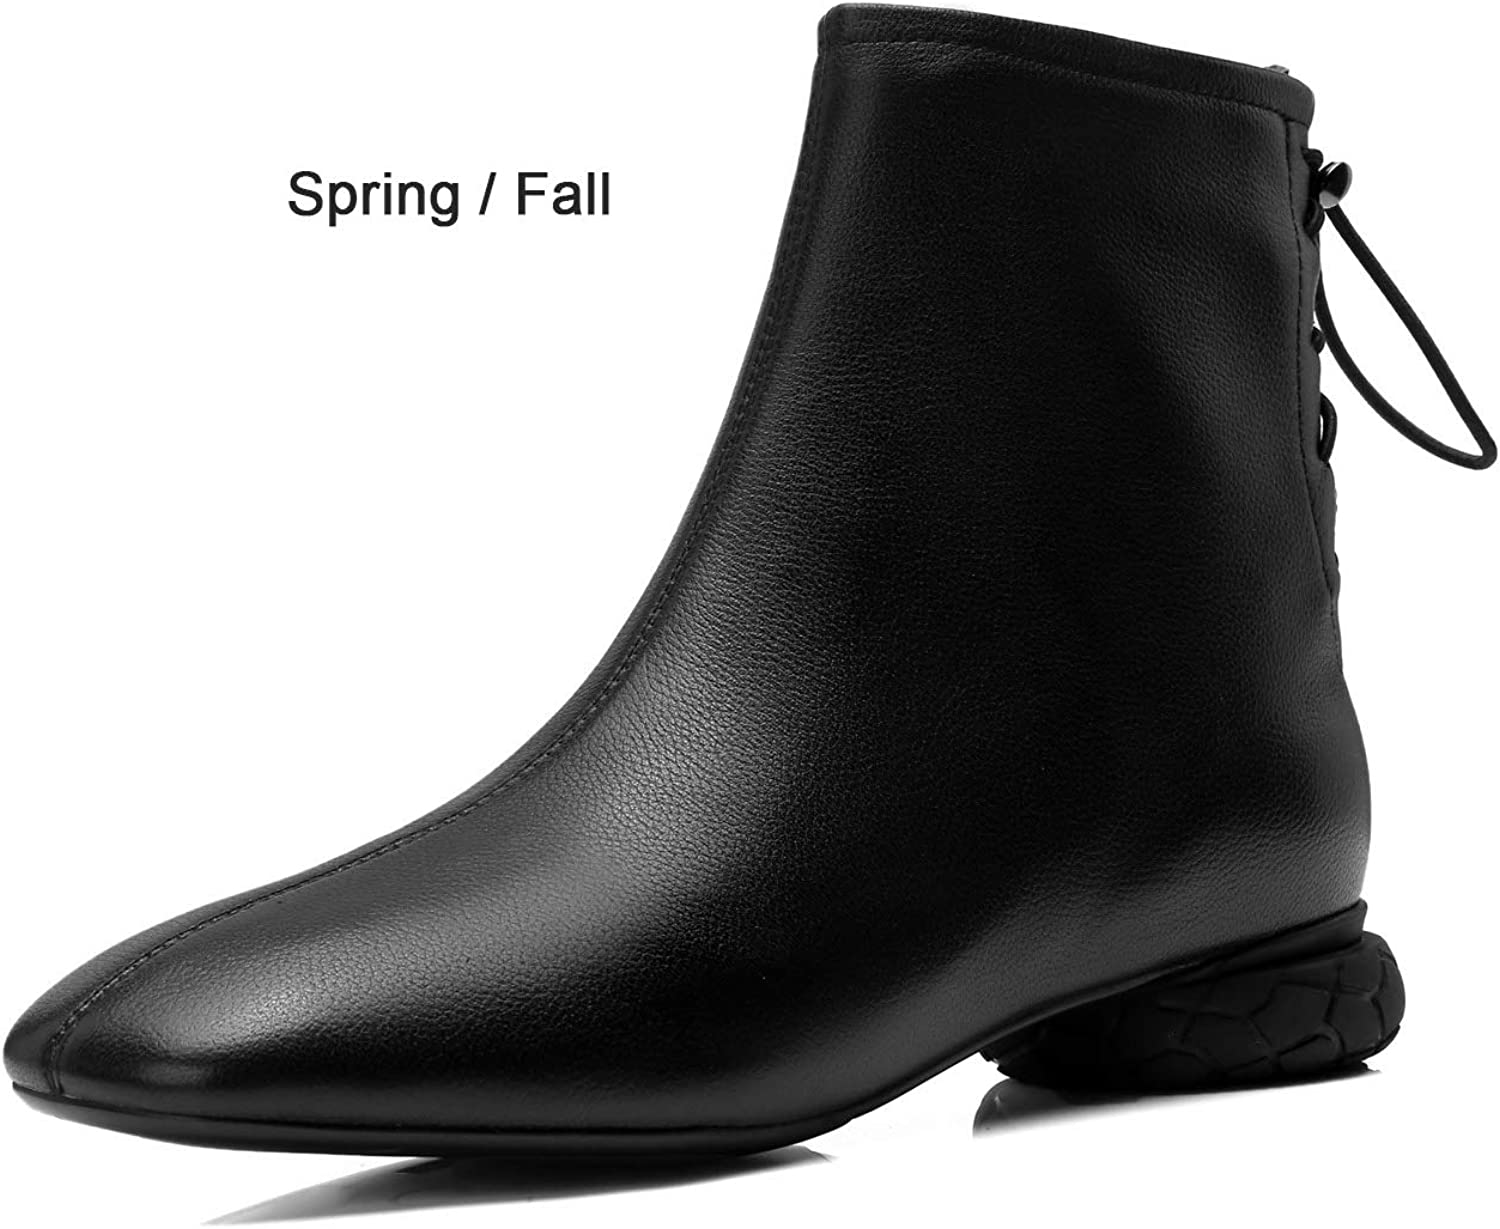 Women's Ankle Boots with Strange Flat Heel shoes Literary Ladies Booties for Fall & Winter